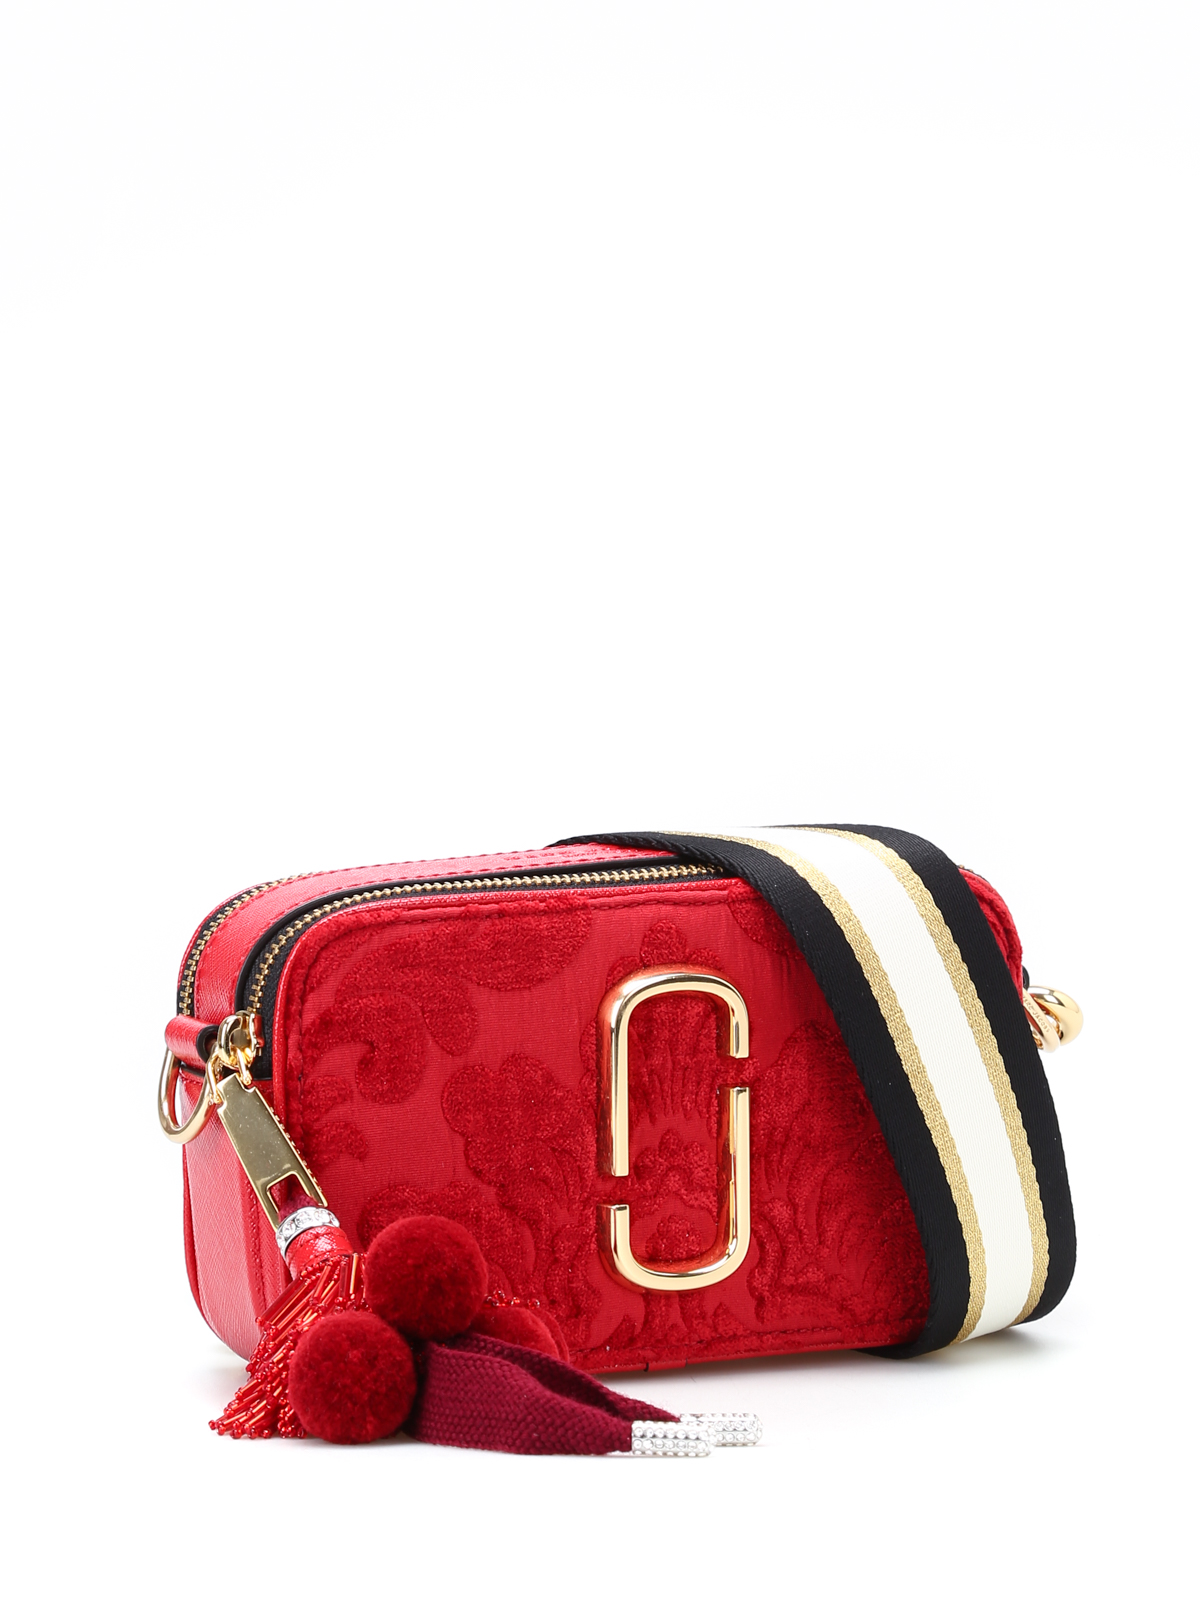 Damask Snapshot Small Camera Bag By Marc Jacobs Cross